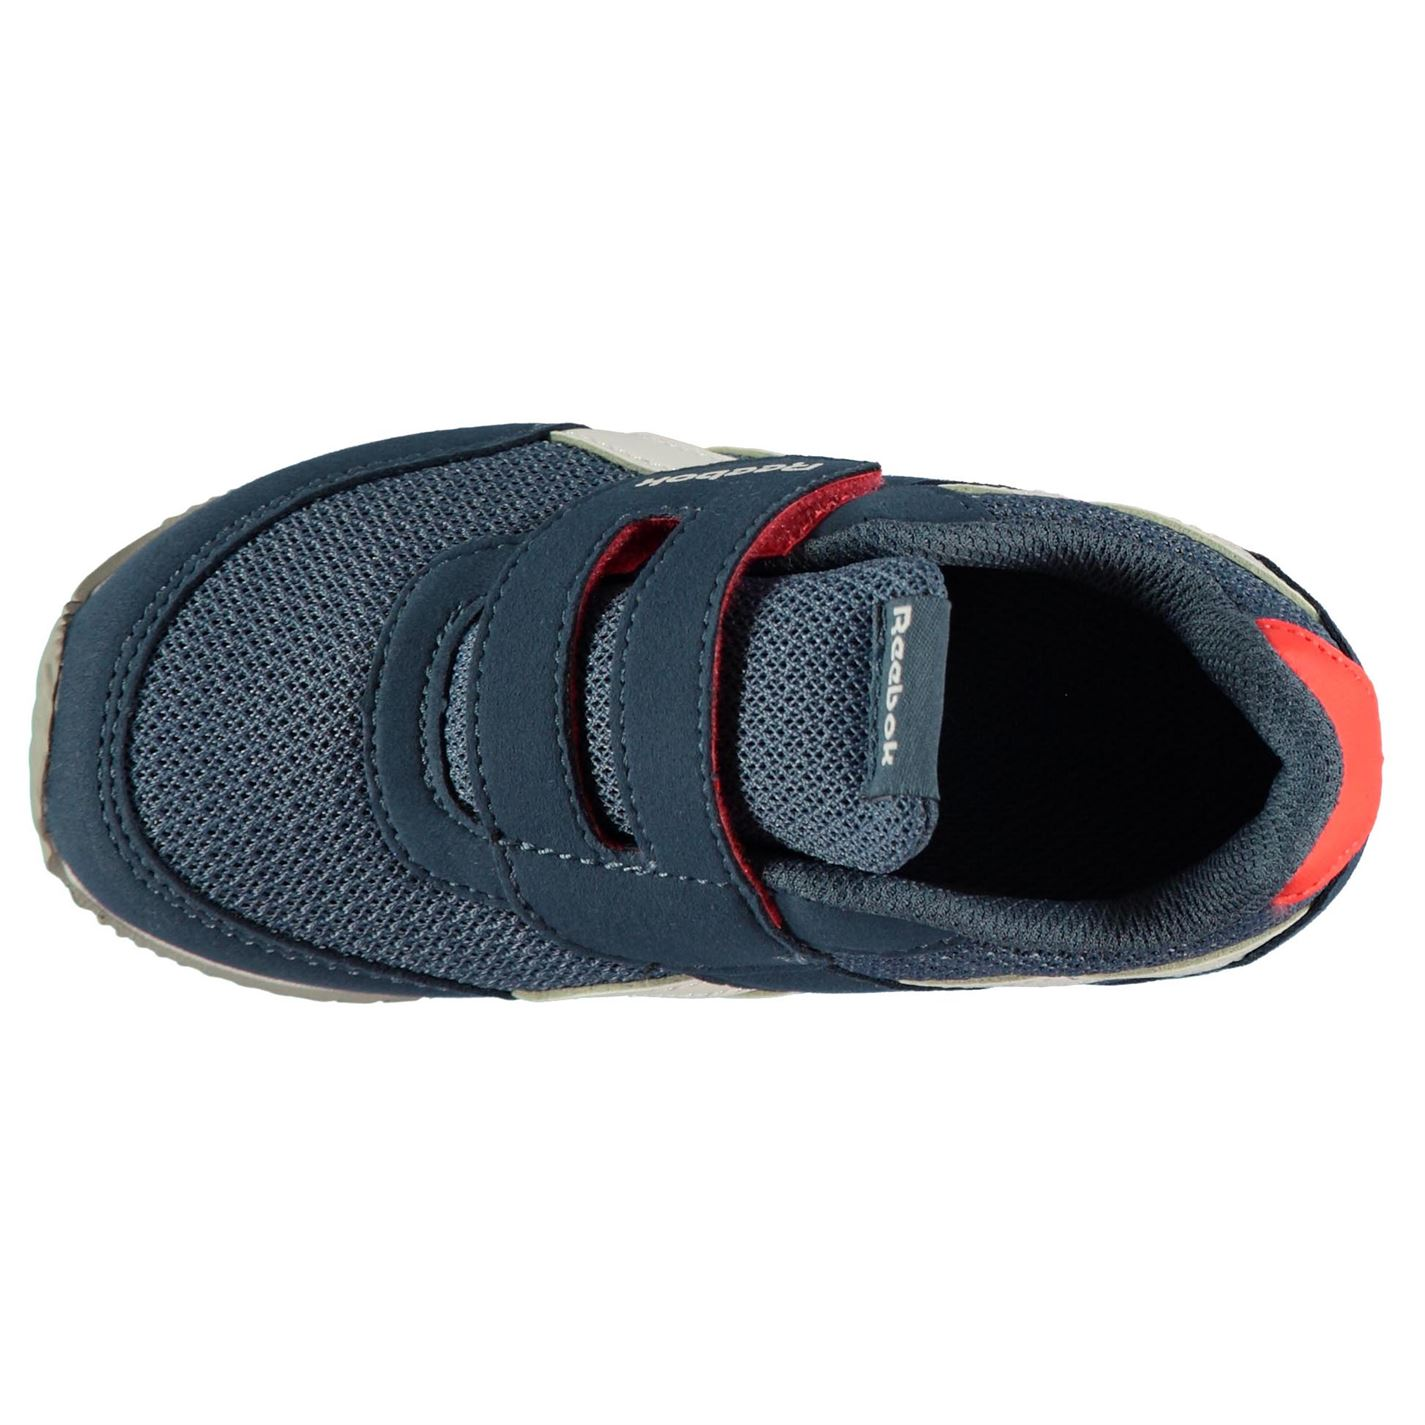 7340e775 Details about Reebok Boys Classic Jogger RS Baby Trainers Shoes Footwear  Touch and Close